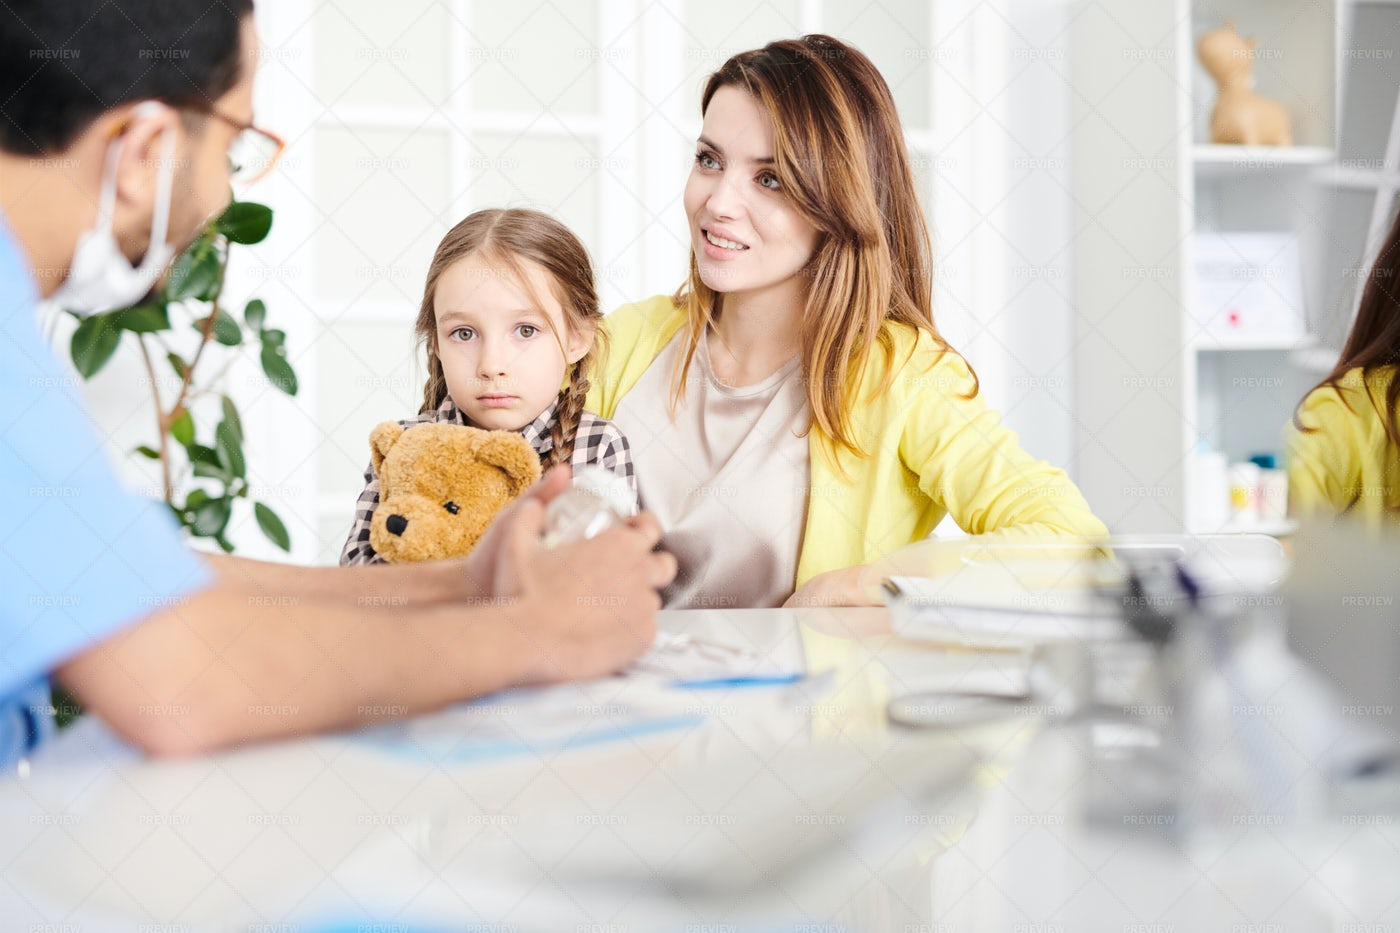 Scared Little Girl In Doctors...: Stock Photos